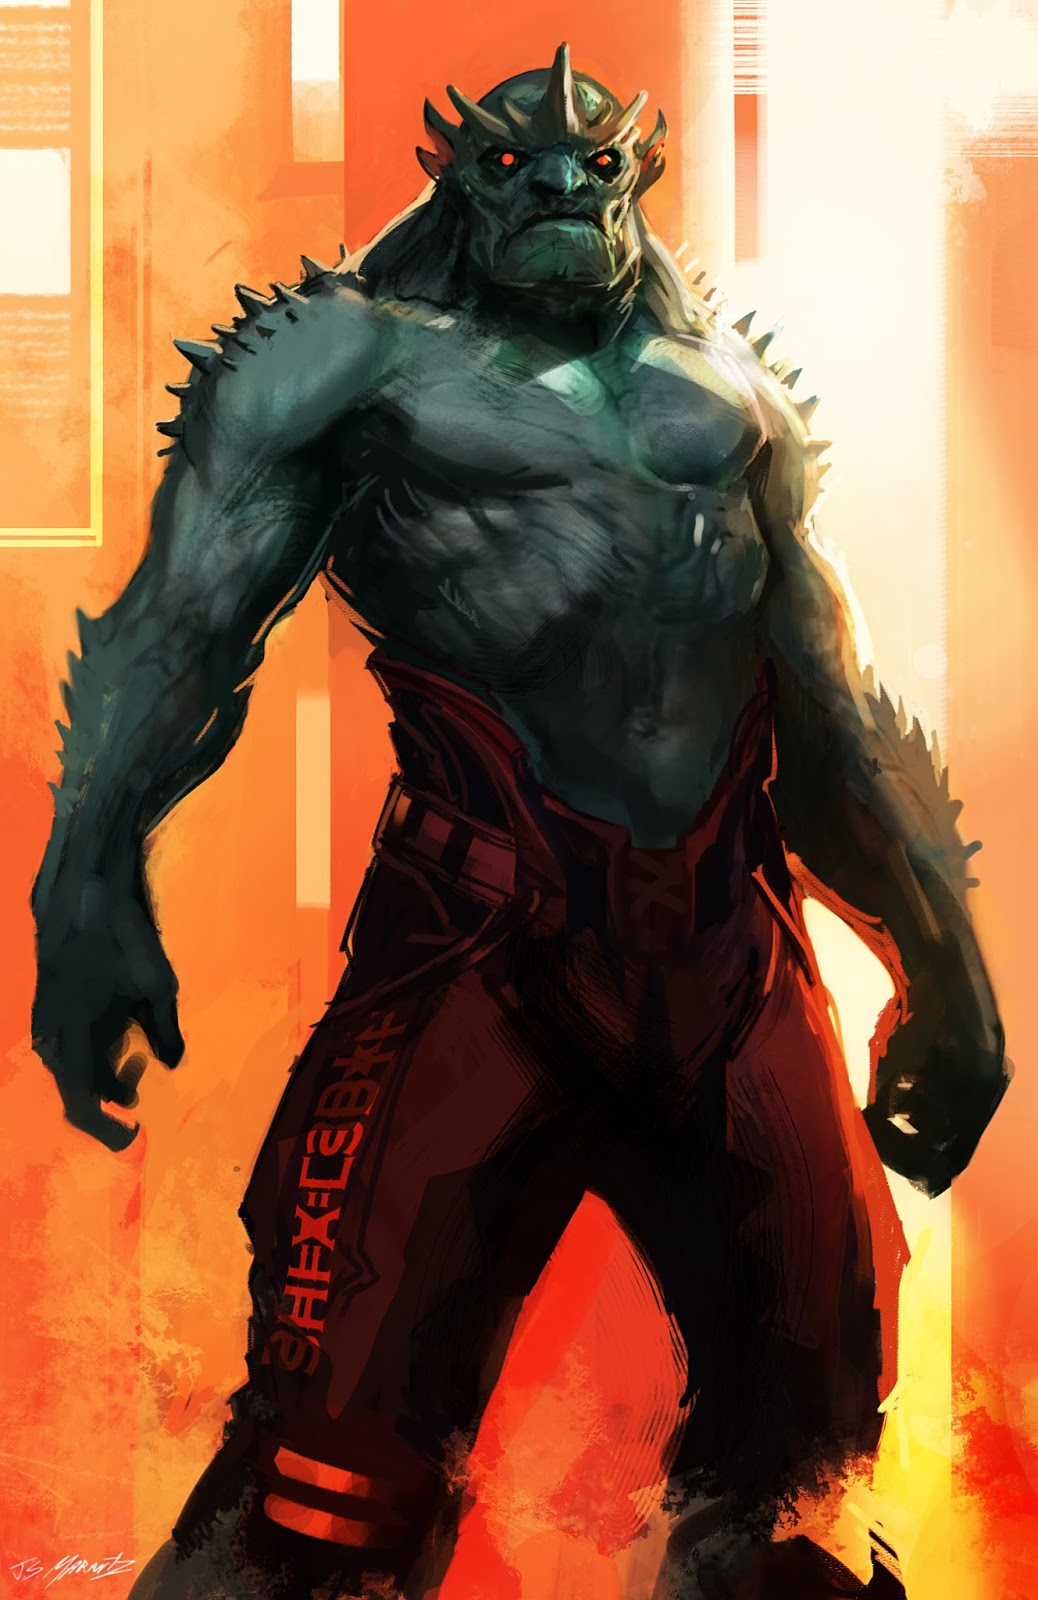 Guardians of the Galaxy Concept Art by Jerad Marantz